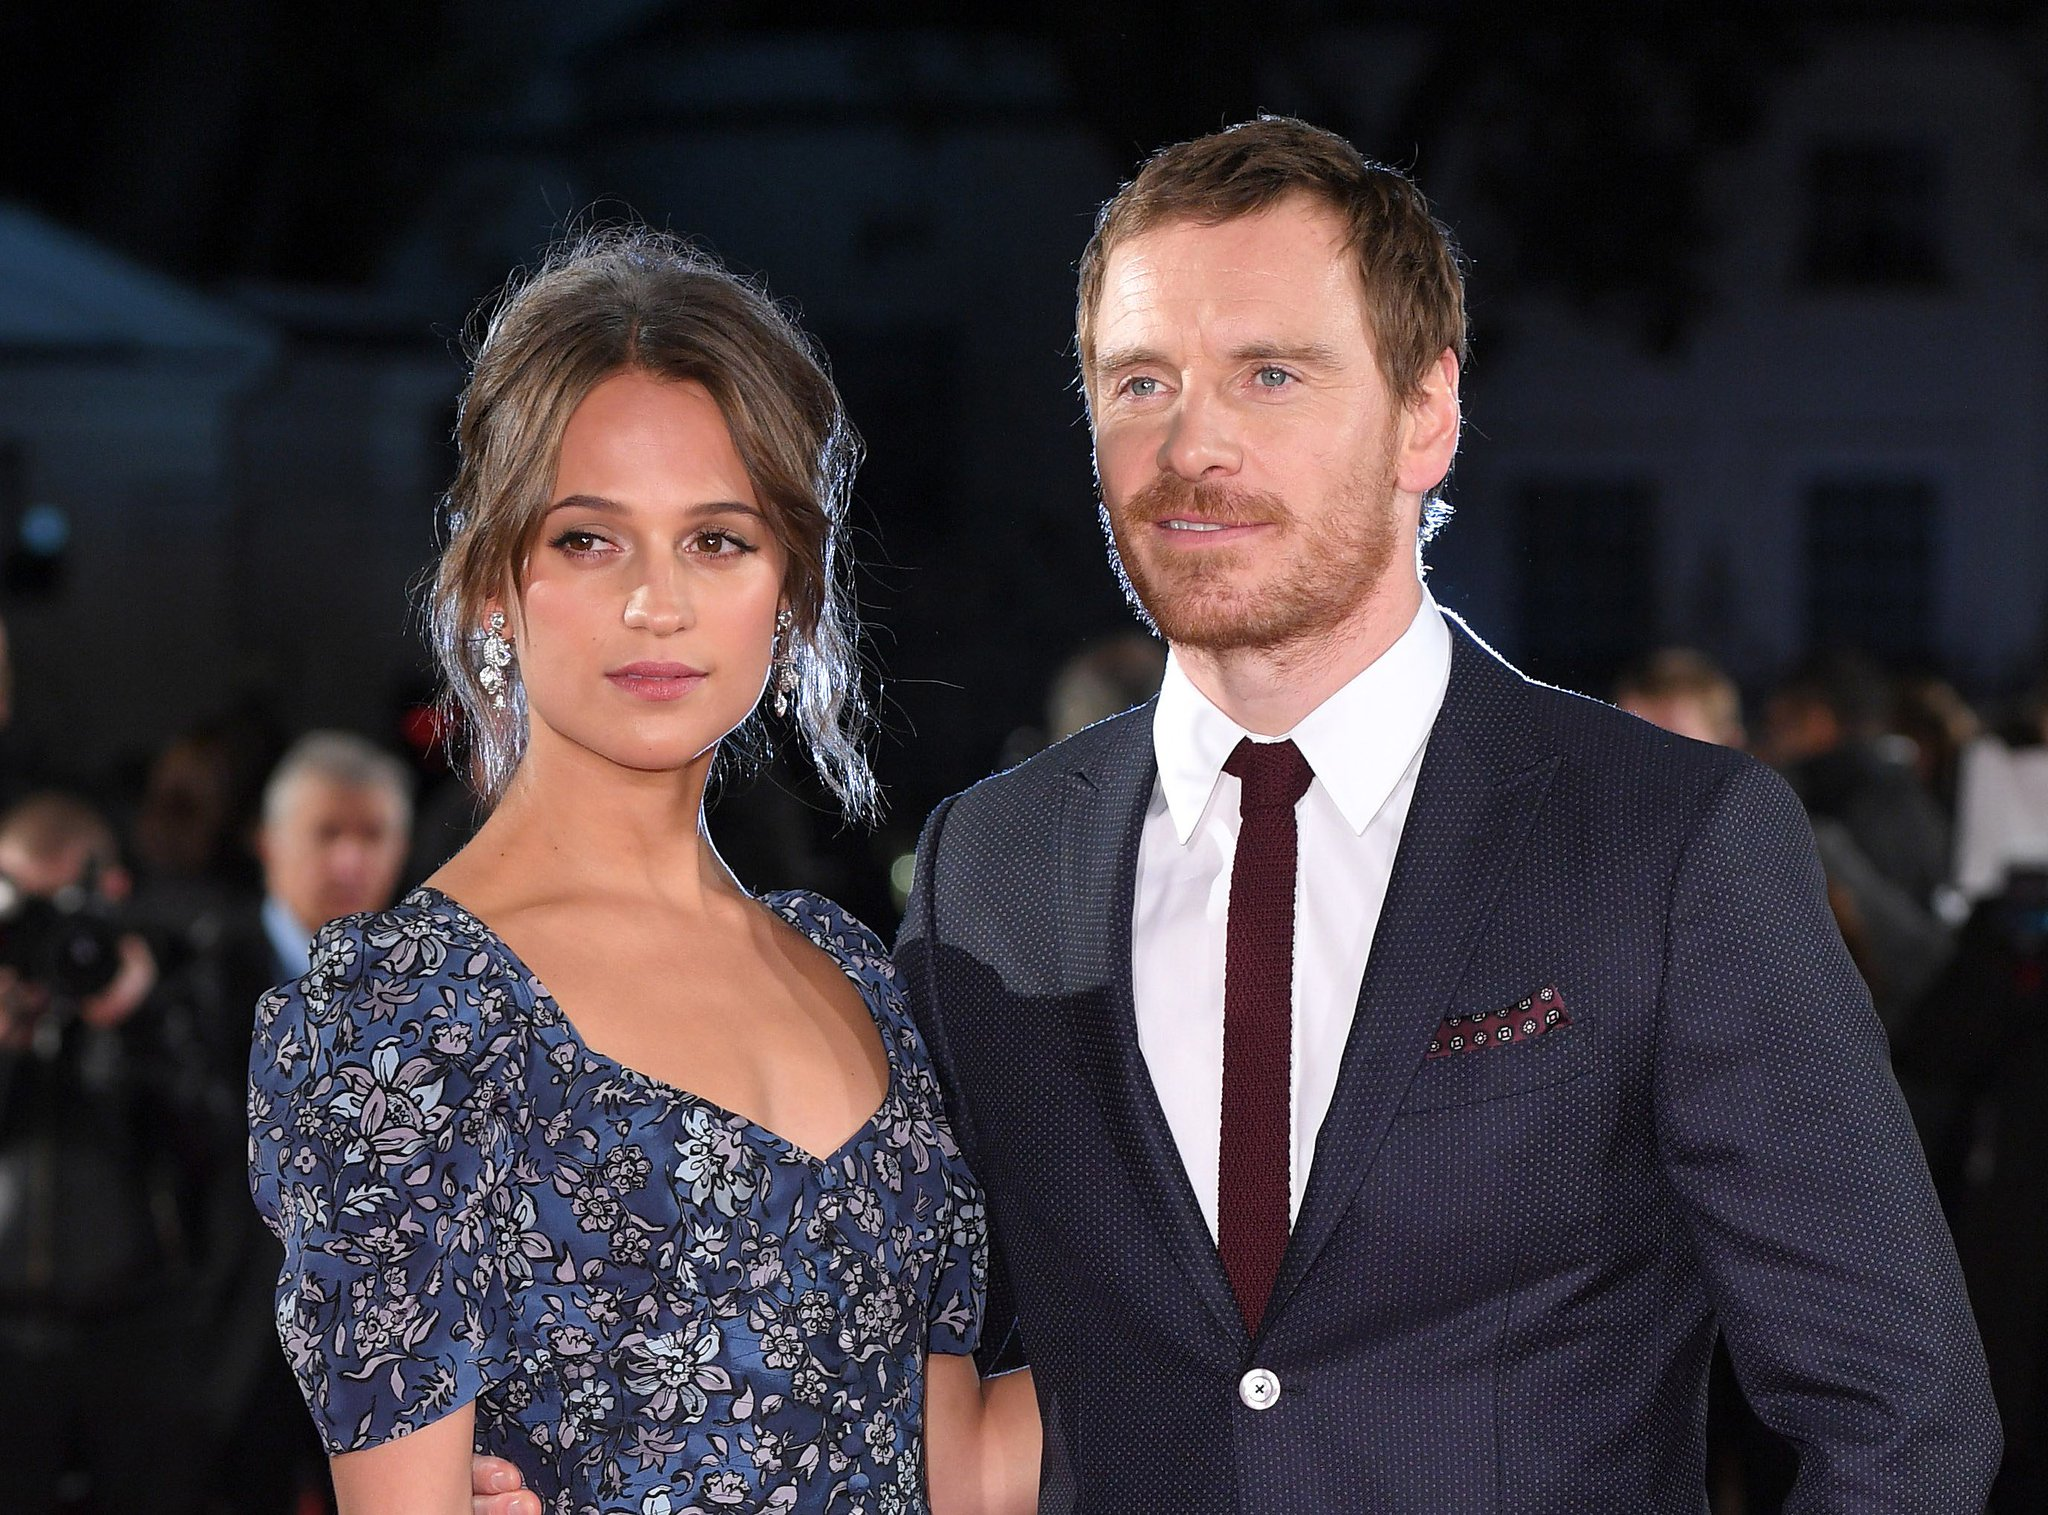 Alicia Vikander and Michael Fassbender reportedly got married this weekend: https://t.co/iByHgiUDn7 https://t.co/AaKxqeAqIB